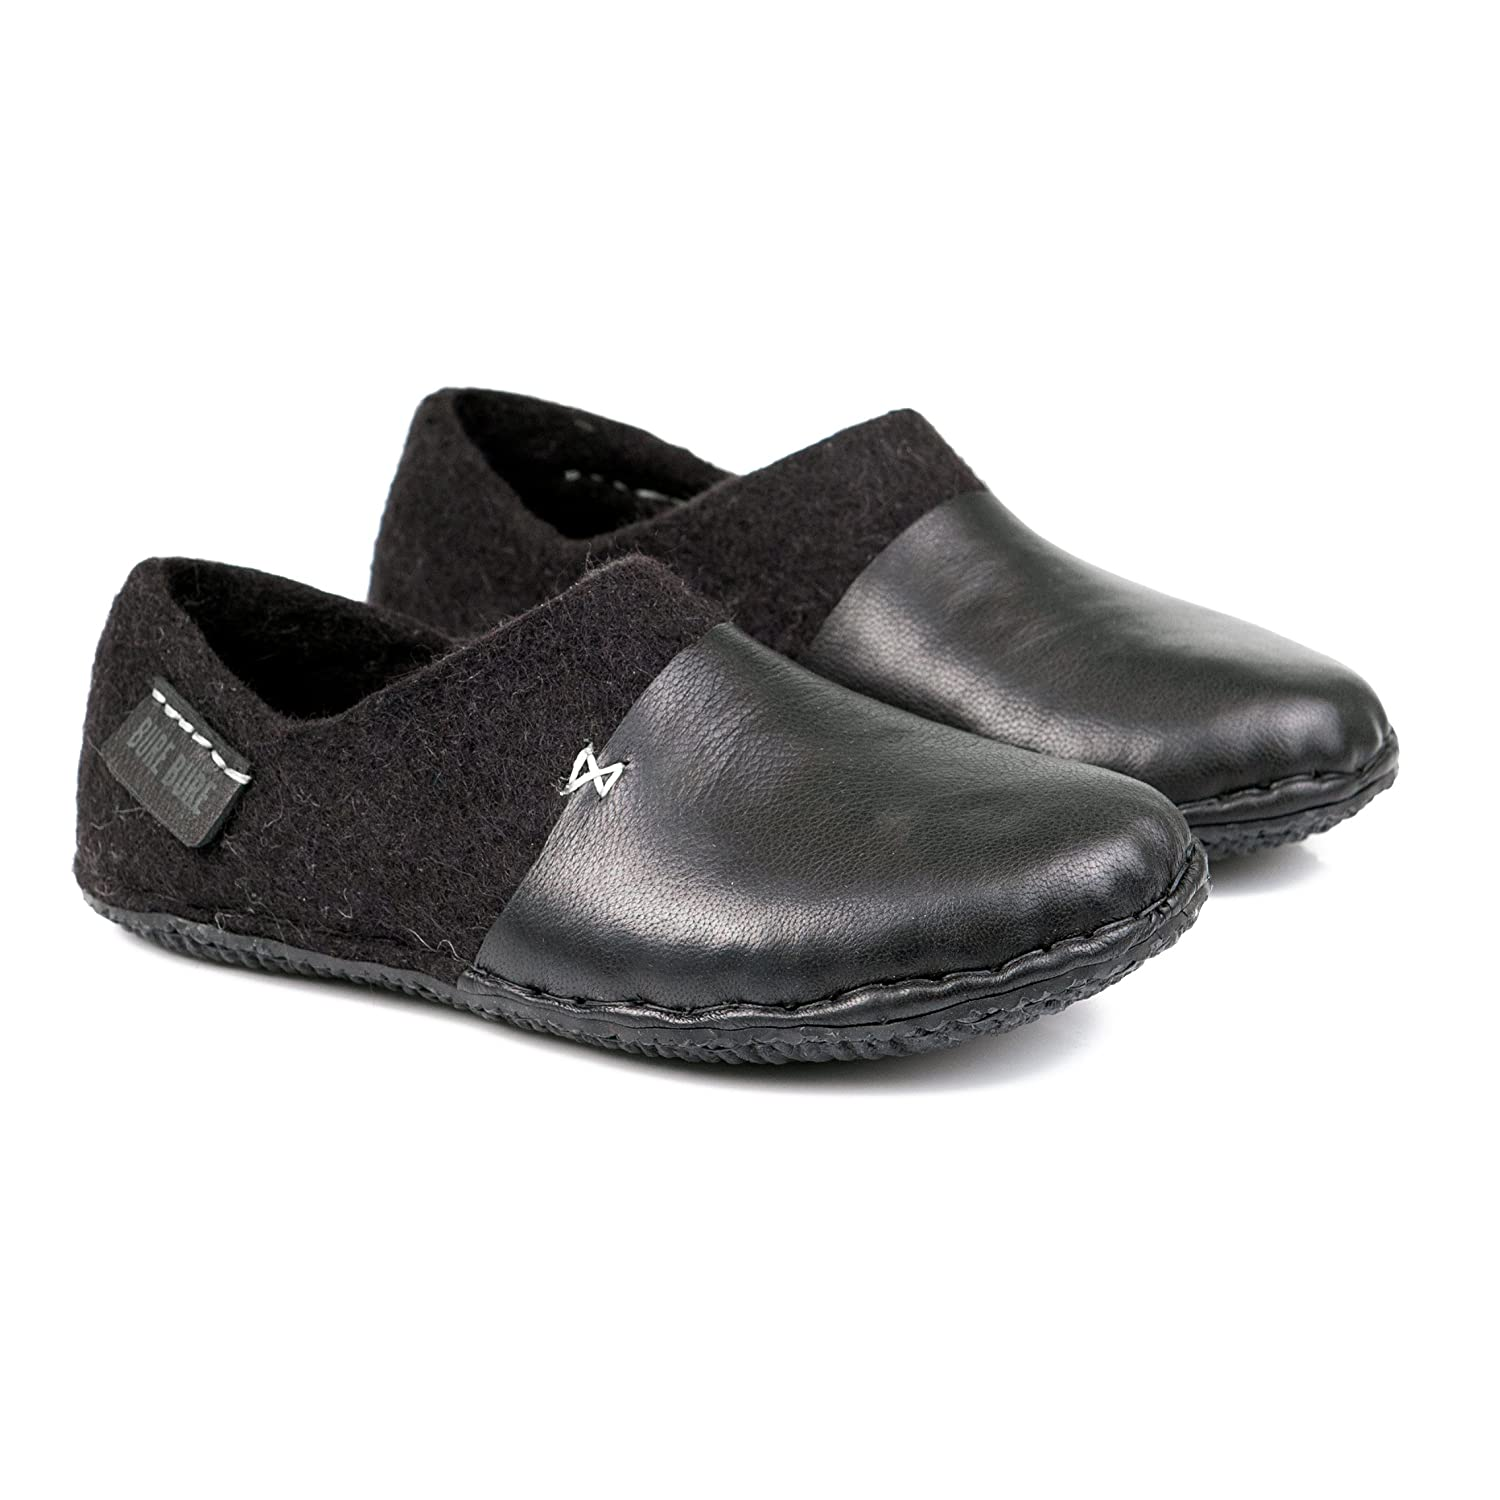 BureBure Men Wool Clogs with Natural Edge Leather Hand Felted in Europe Black